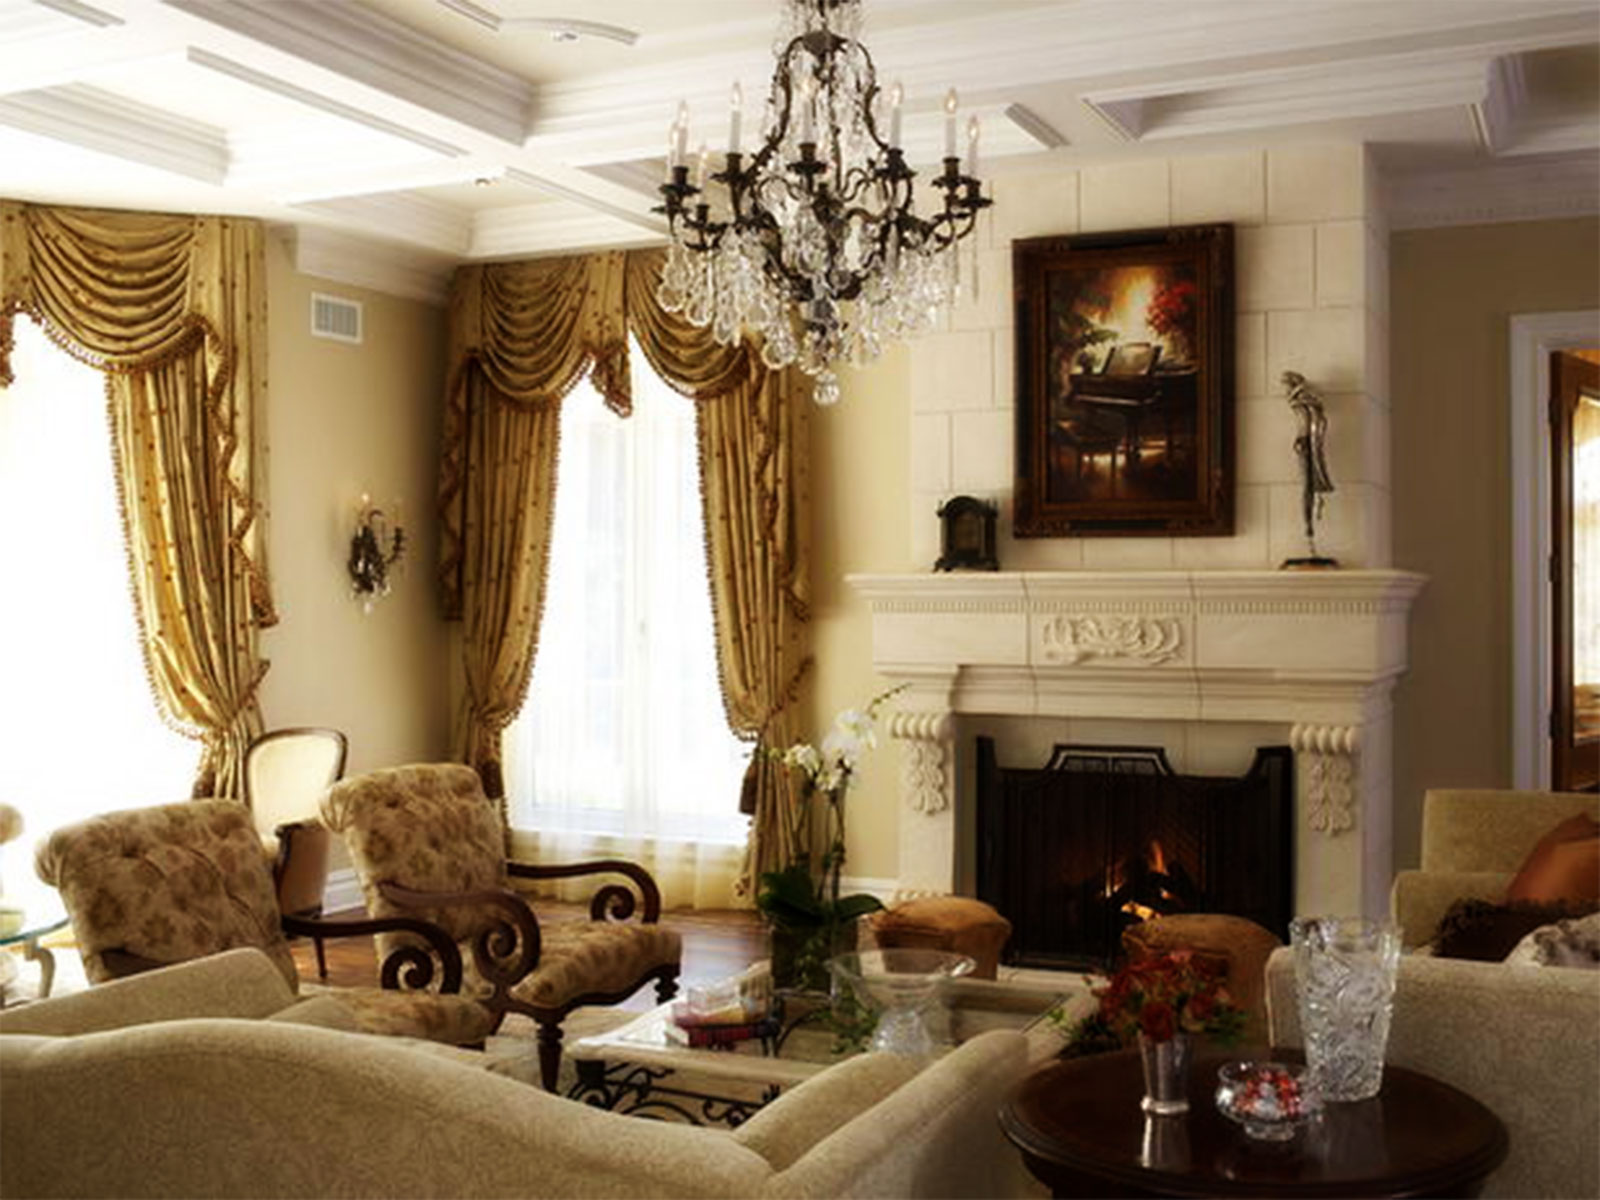 Traditional living room decor remodeling ideas